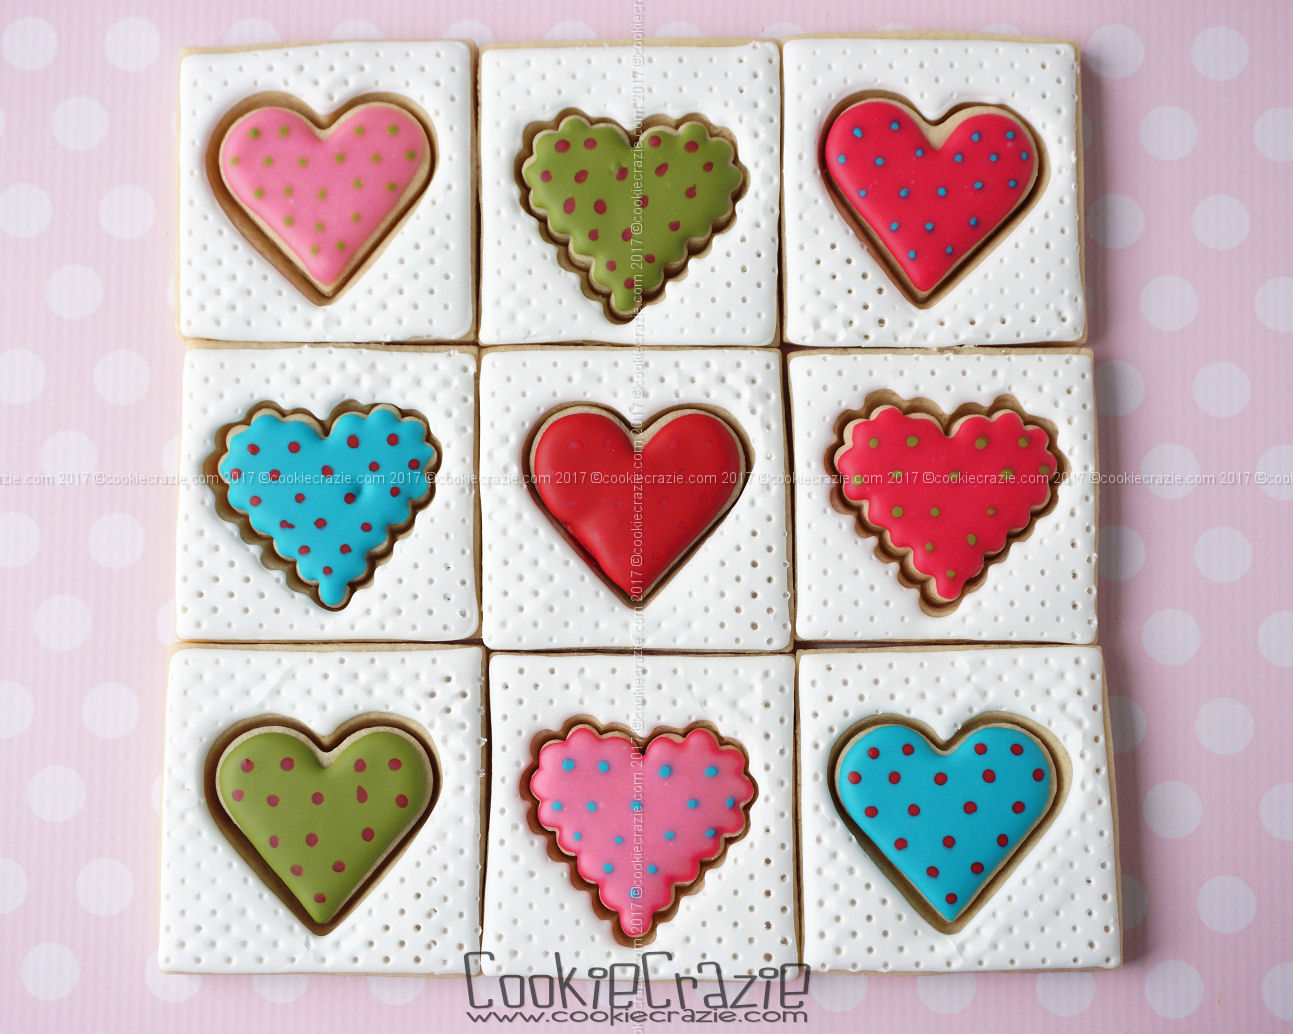 Heart Patchwork Quilt Decorated Cookie Collection blog post  HERE